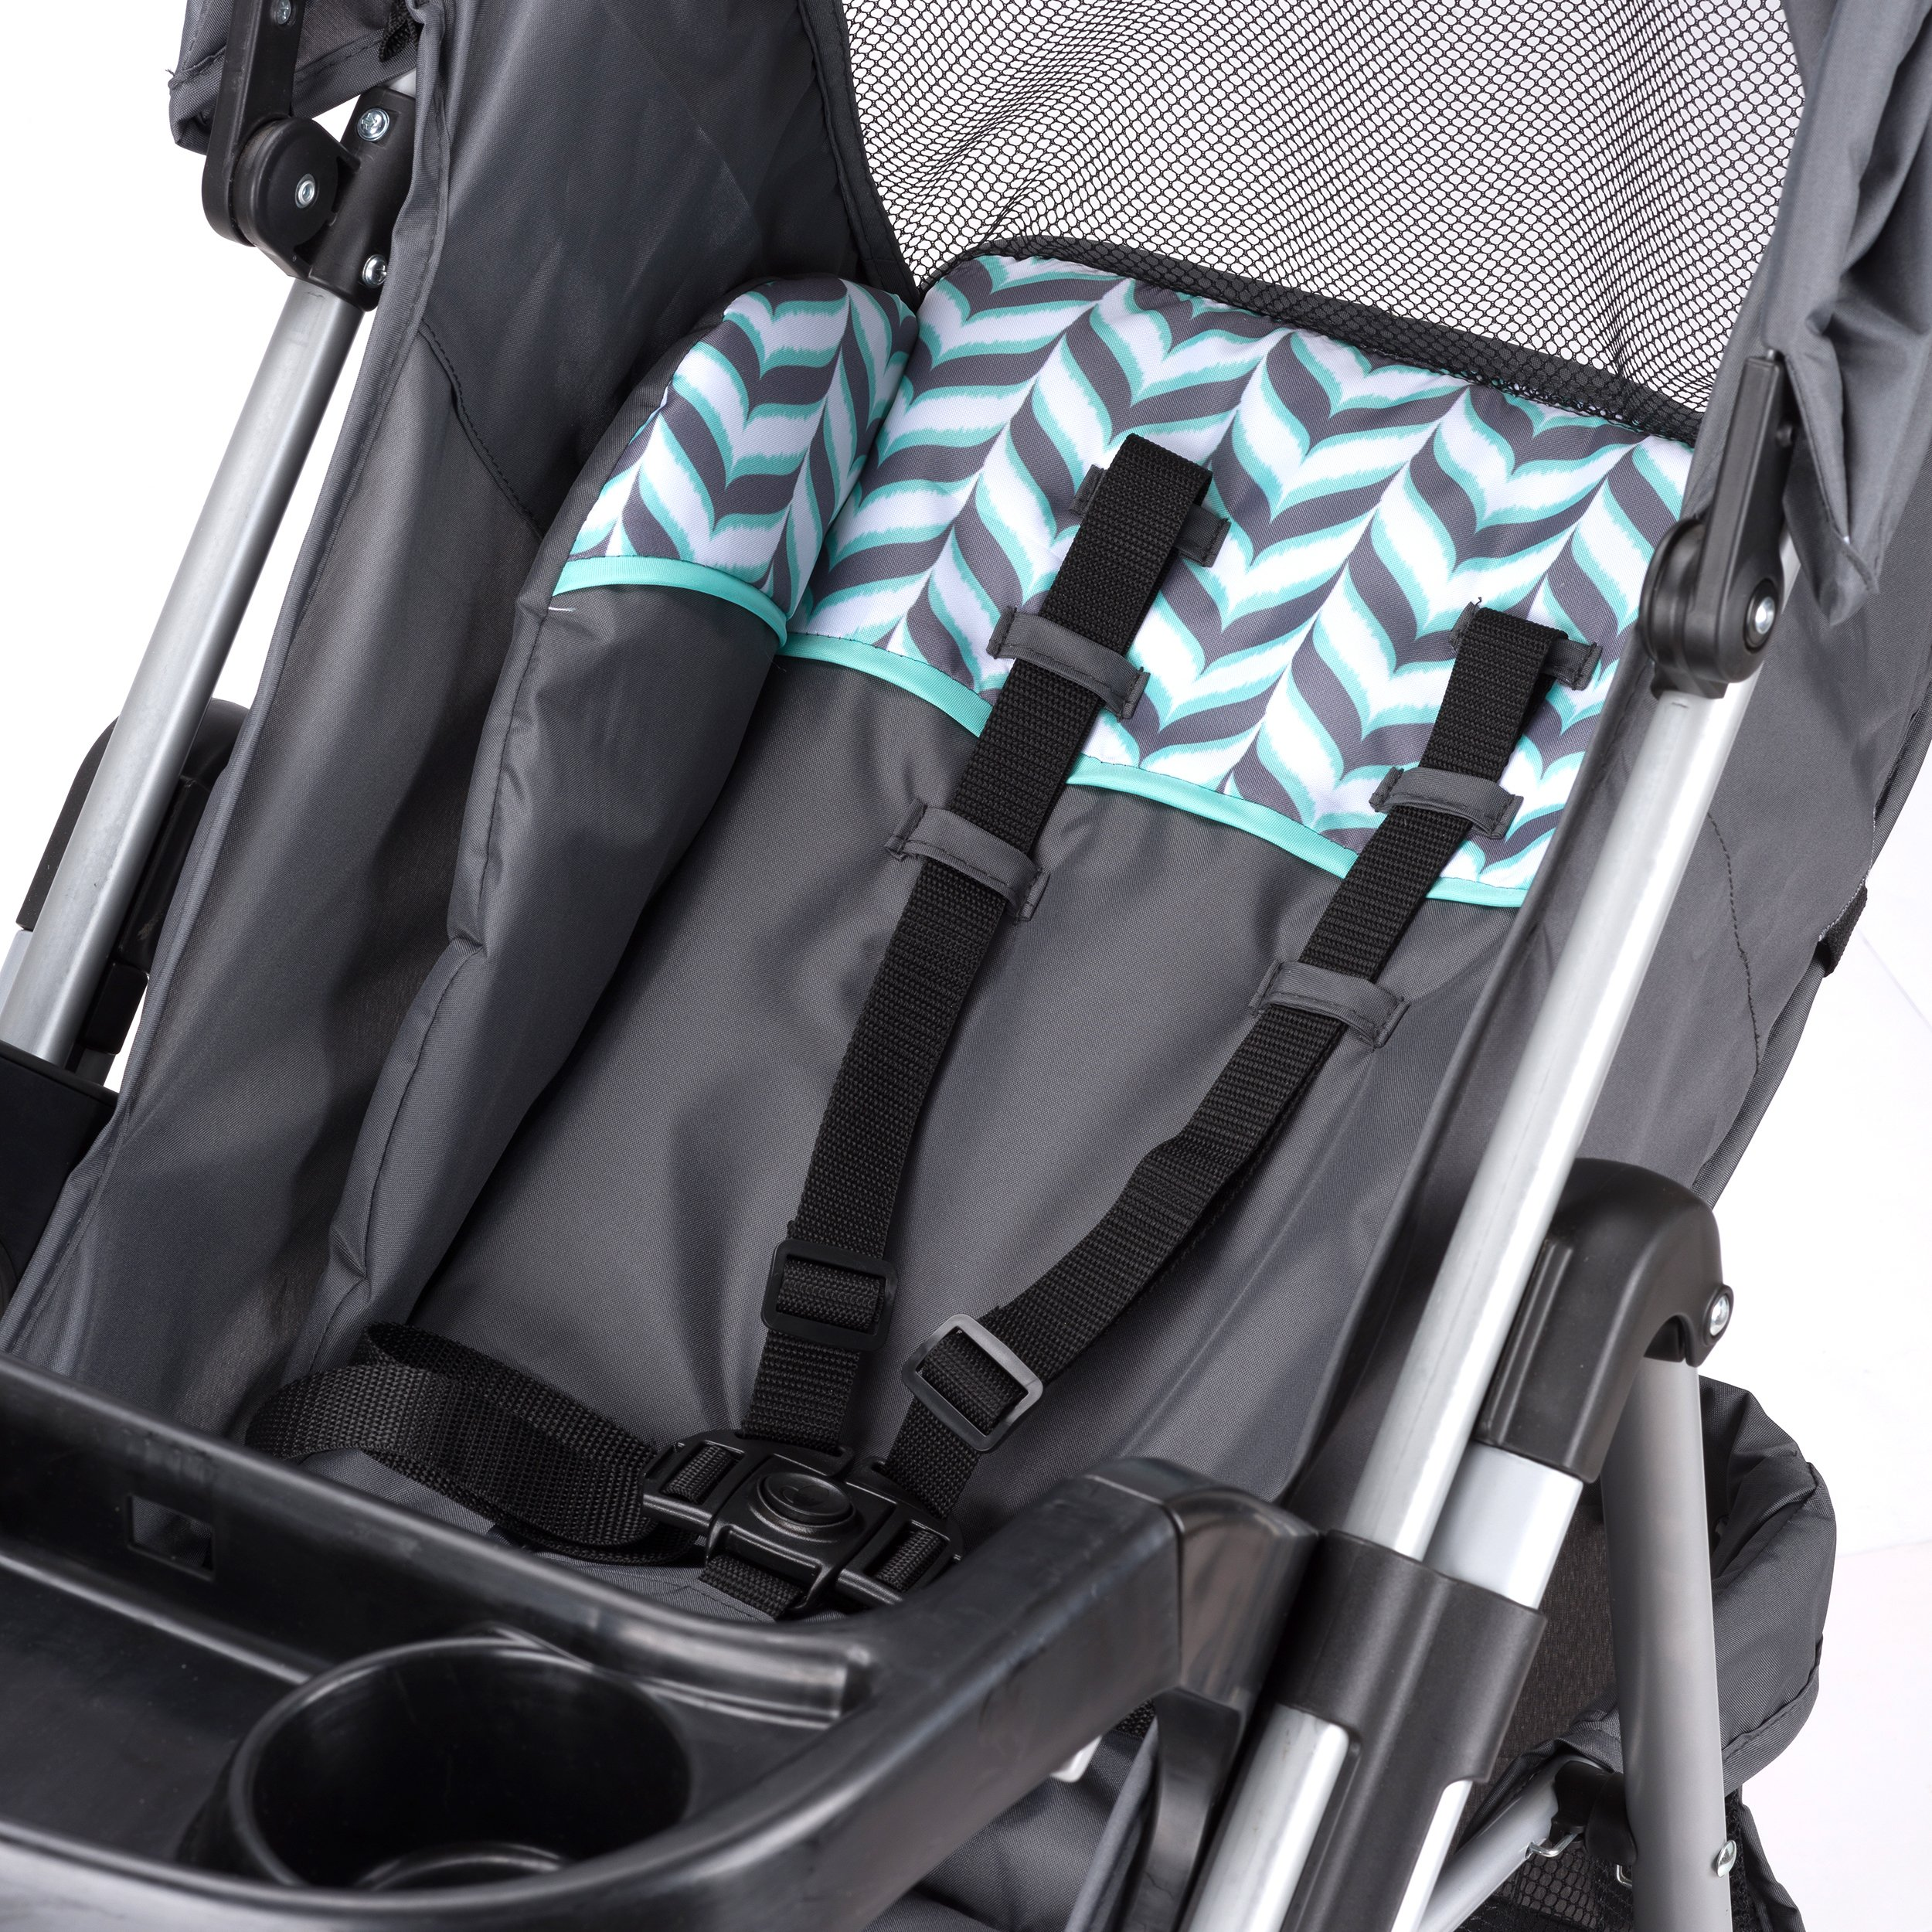 Evenflo Vive Travel System with Embrace, Spearmint Spree by Evenflo (Image #5)